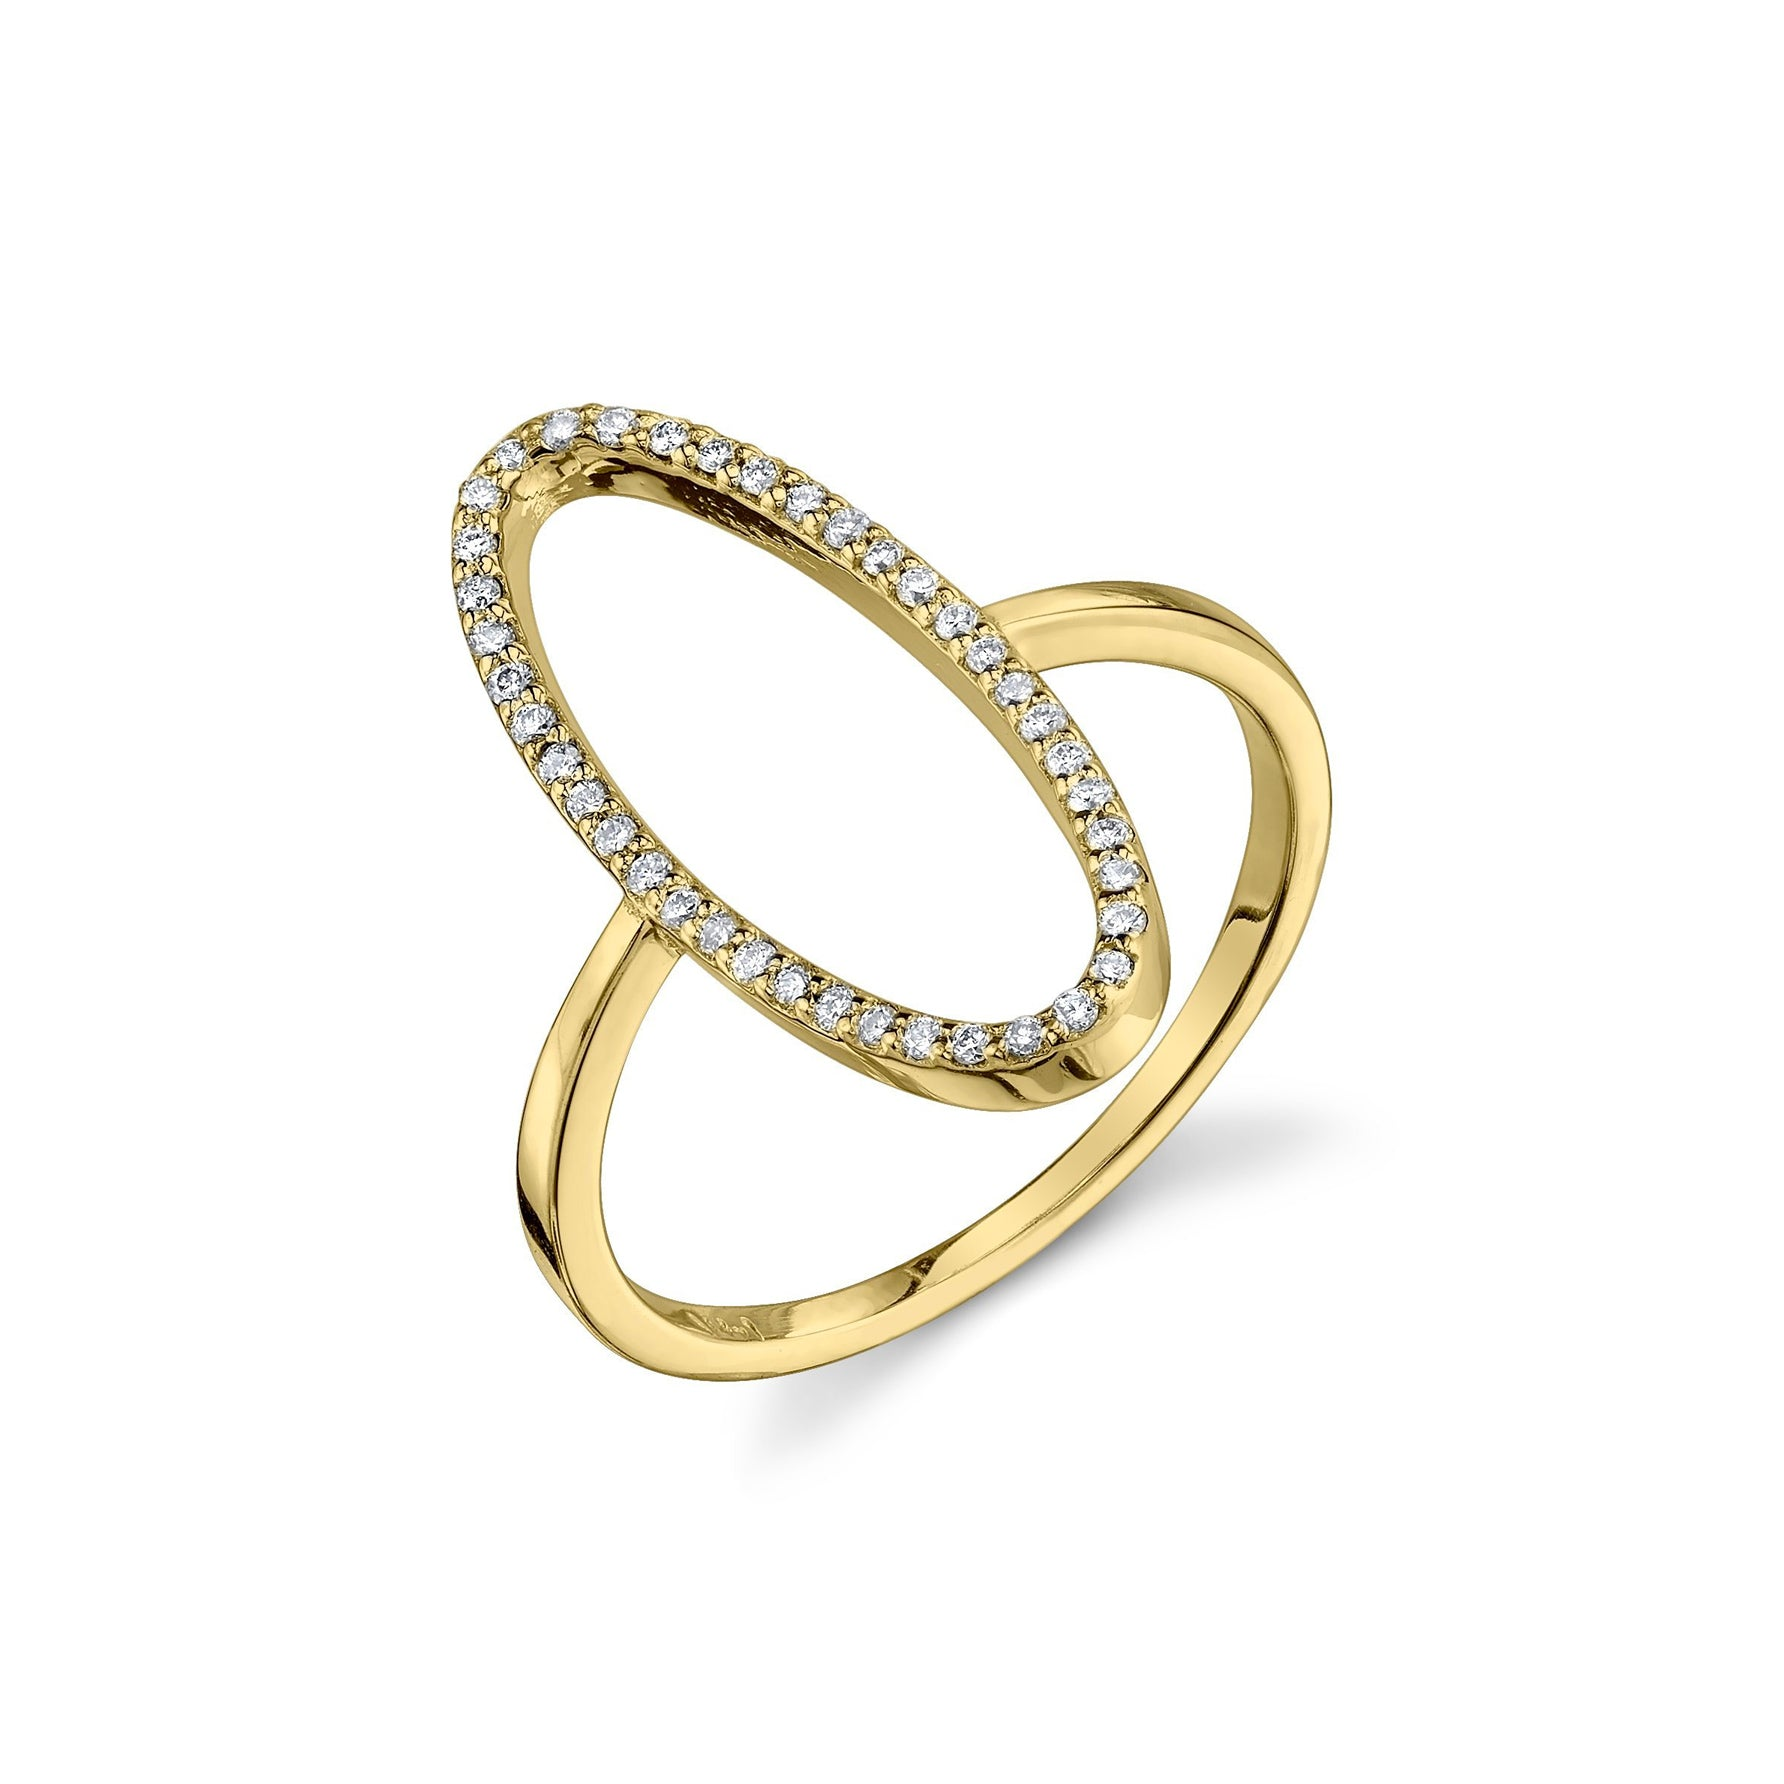 Convex Ring With White Pavé Diamonds - Gabriela Artigas